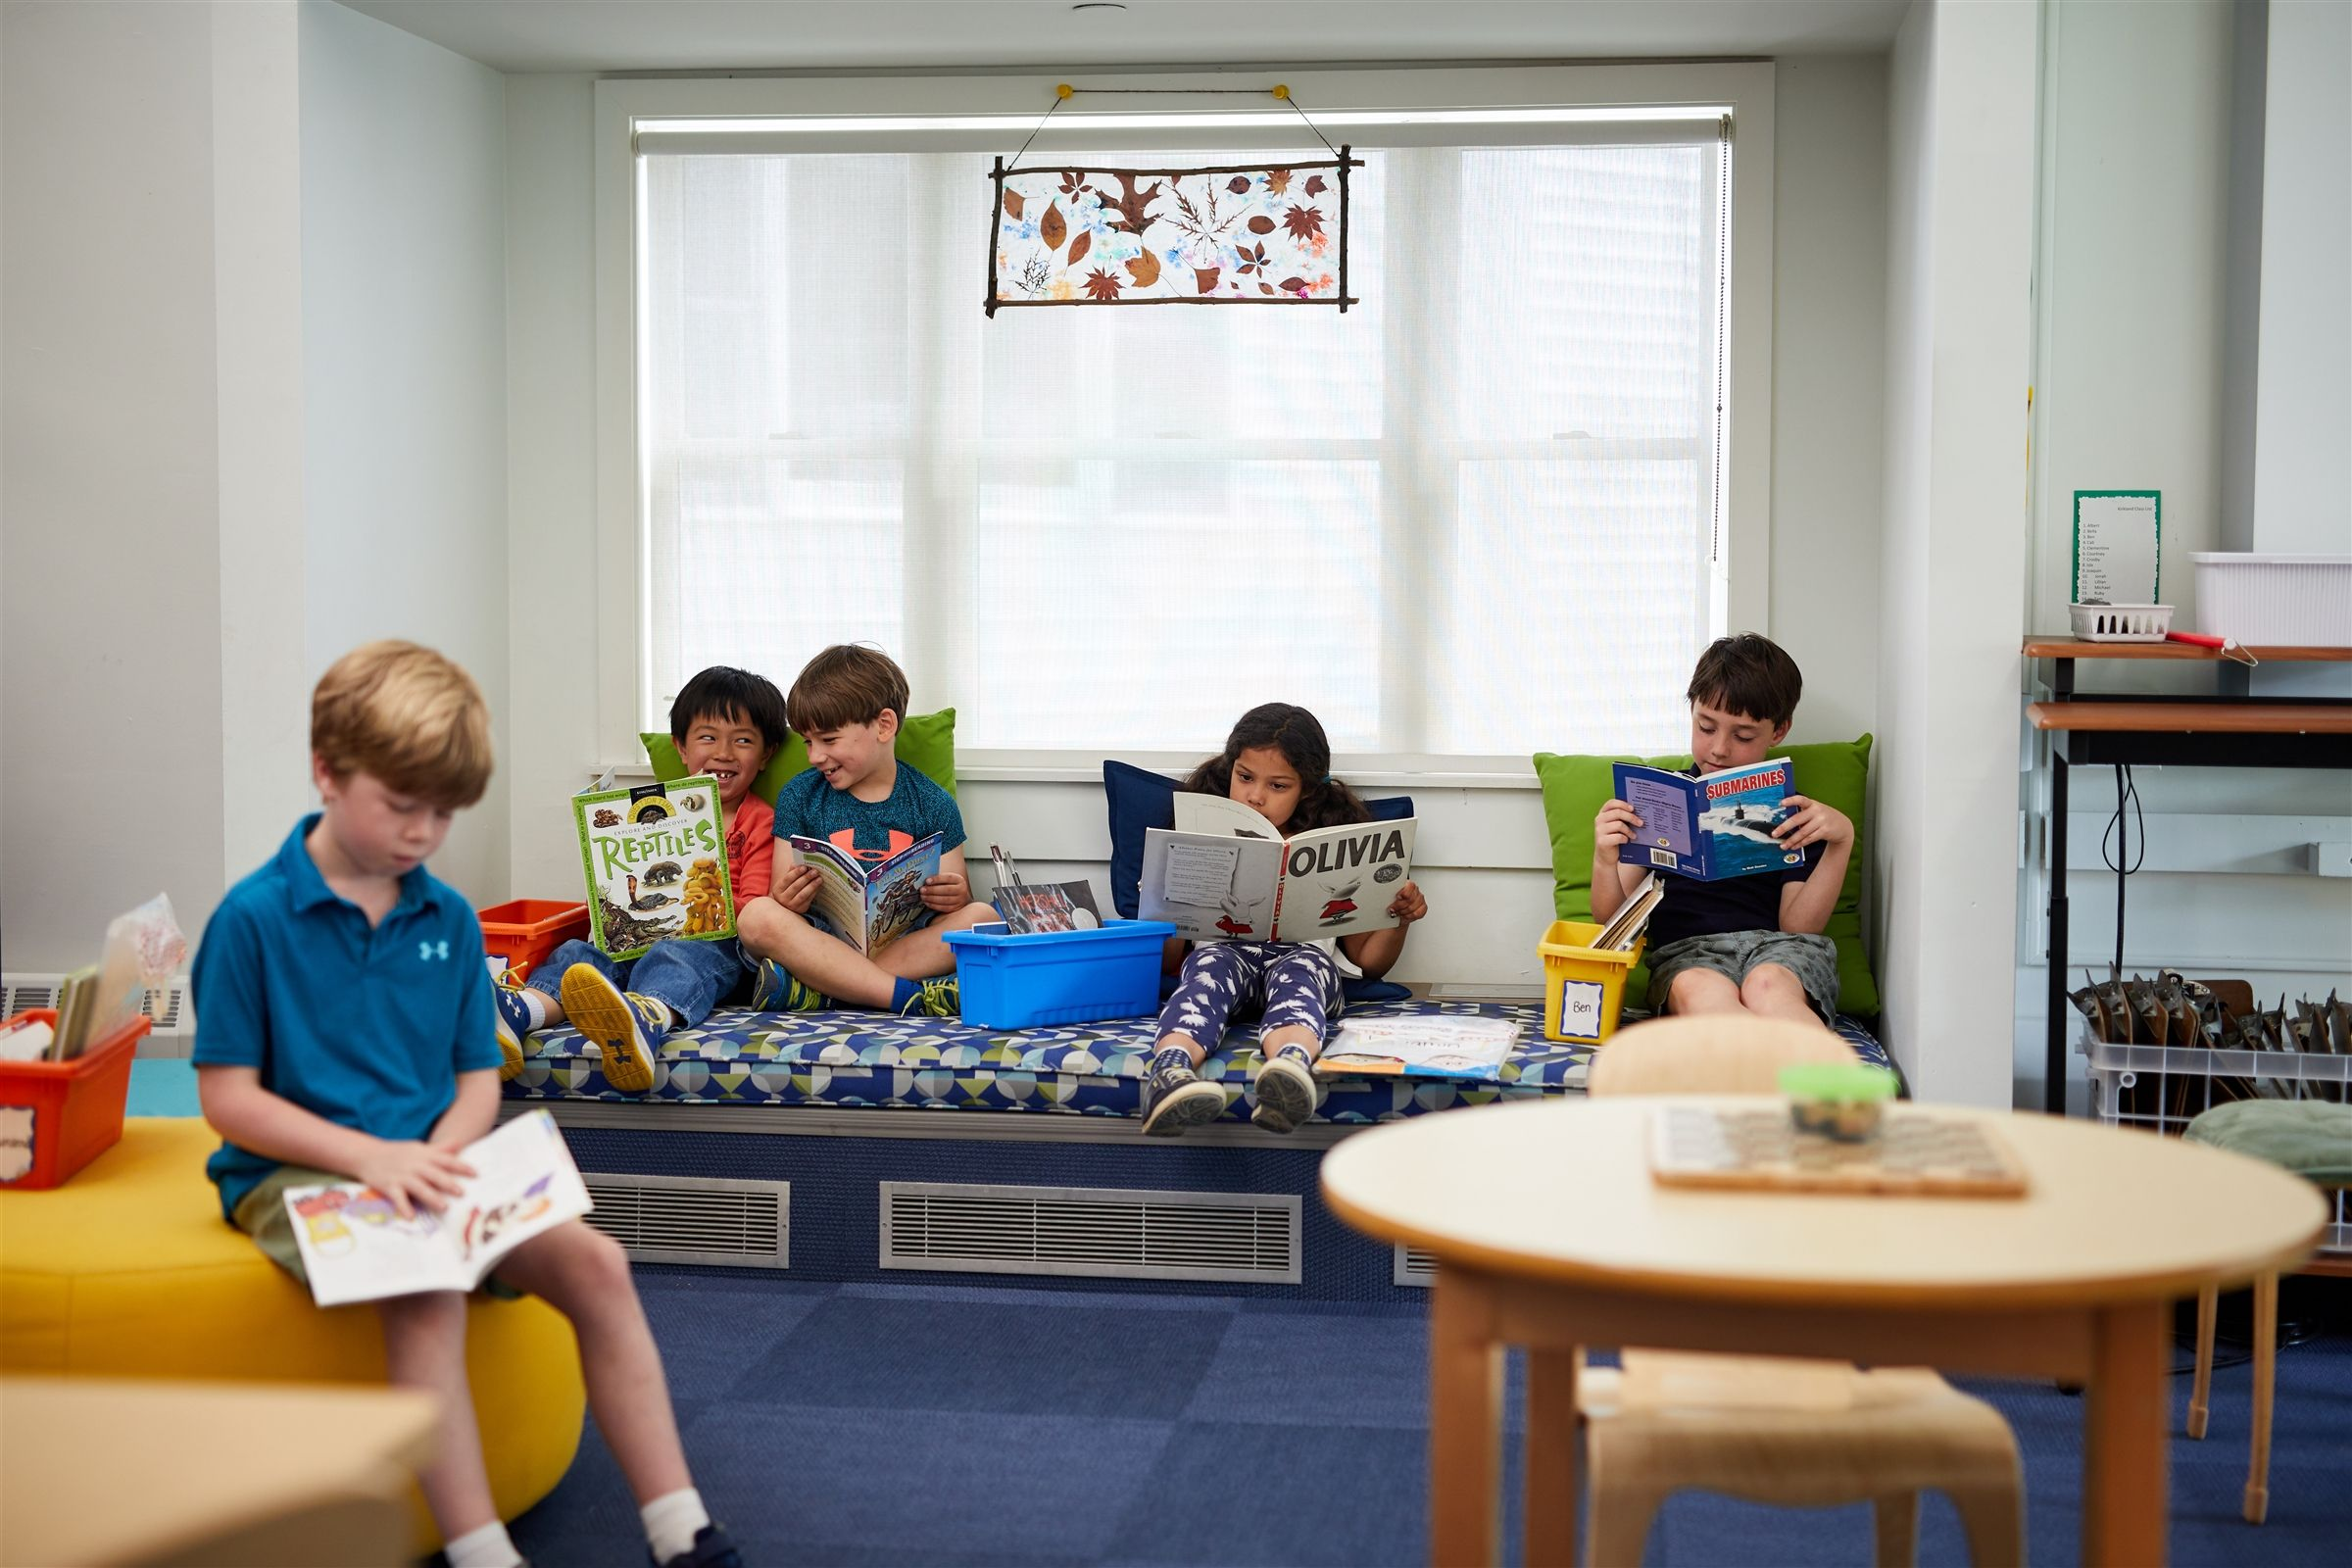 Pops of color, furniture designed for innovative learning, and child-friendly accents throughout rounded out the recent renovation.  And where reading is so central, there are plenty of cozy nooks in which to curl up with a book.